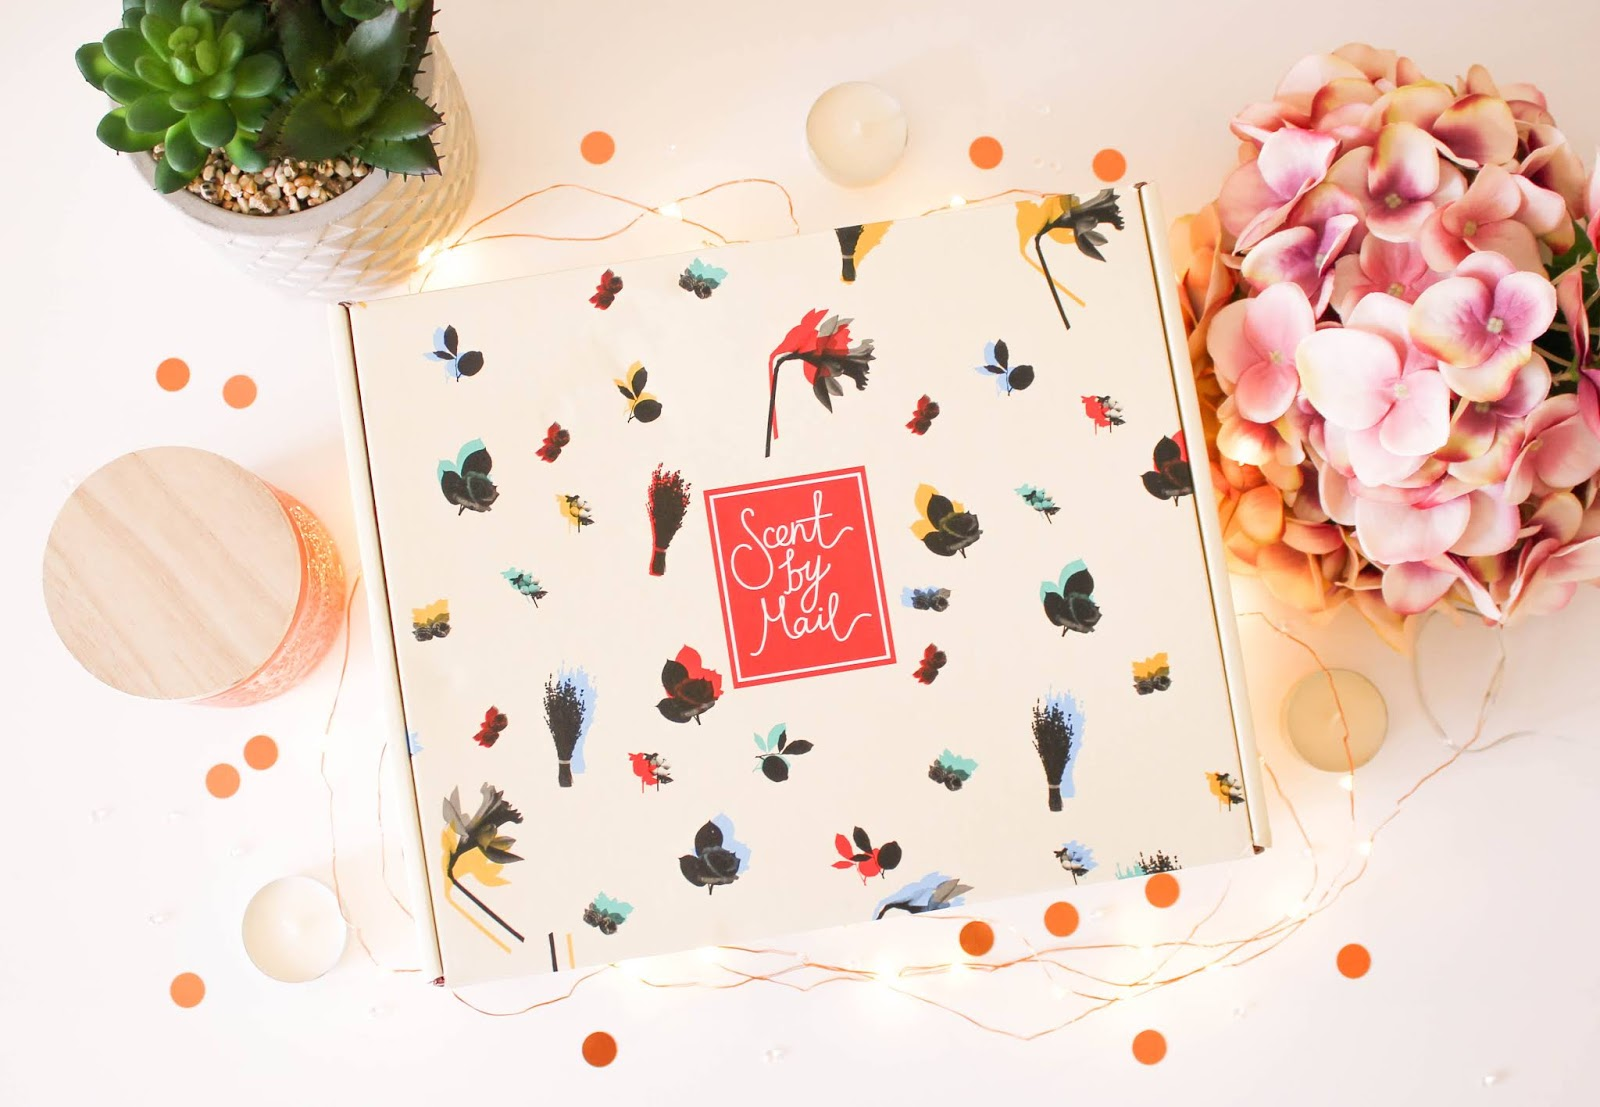 Scent By Mail - The Subscription Box Service For Home Fragrance Lovers